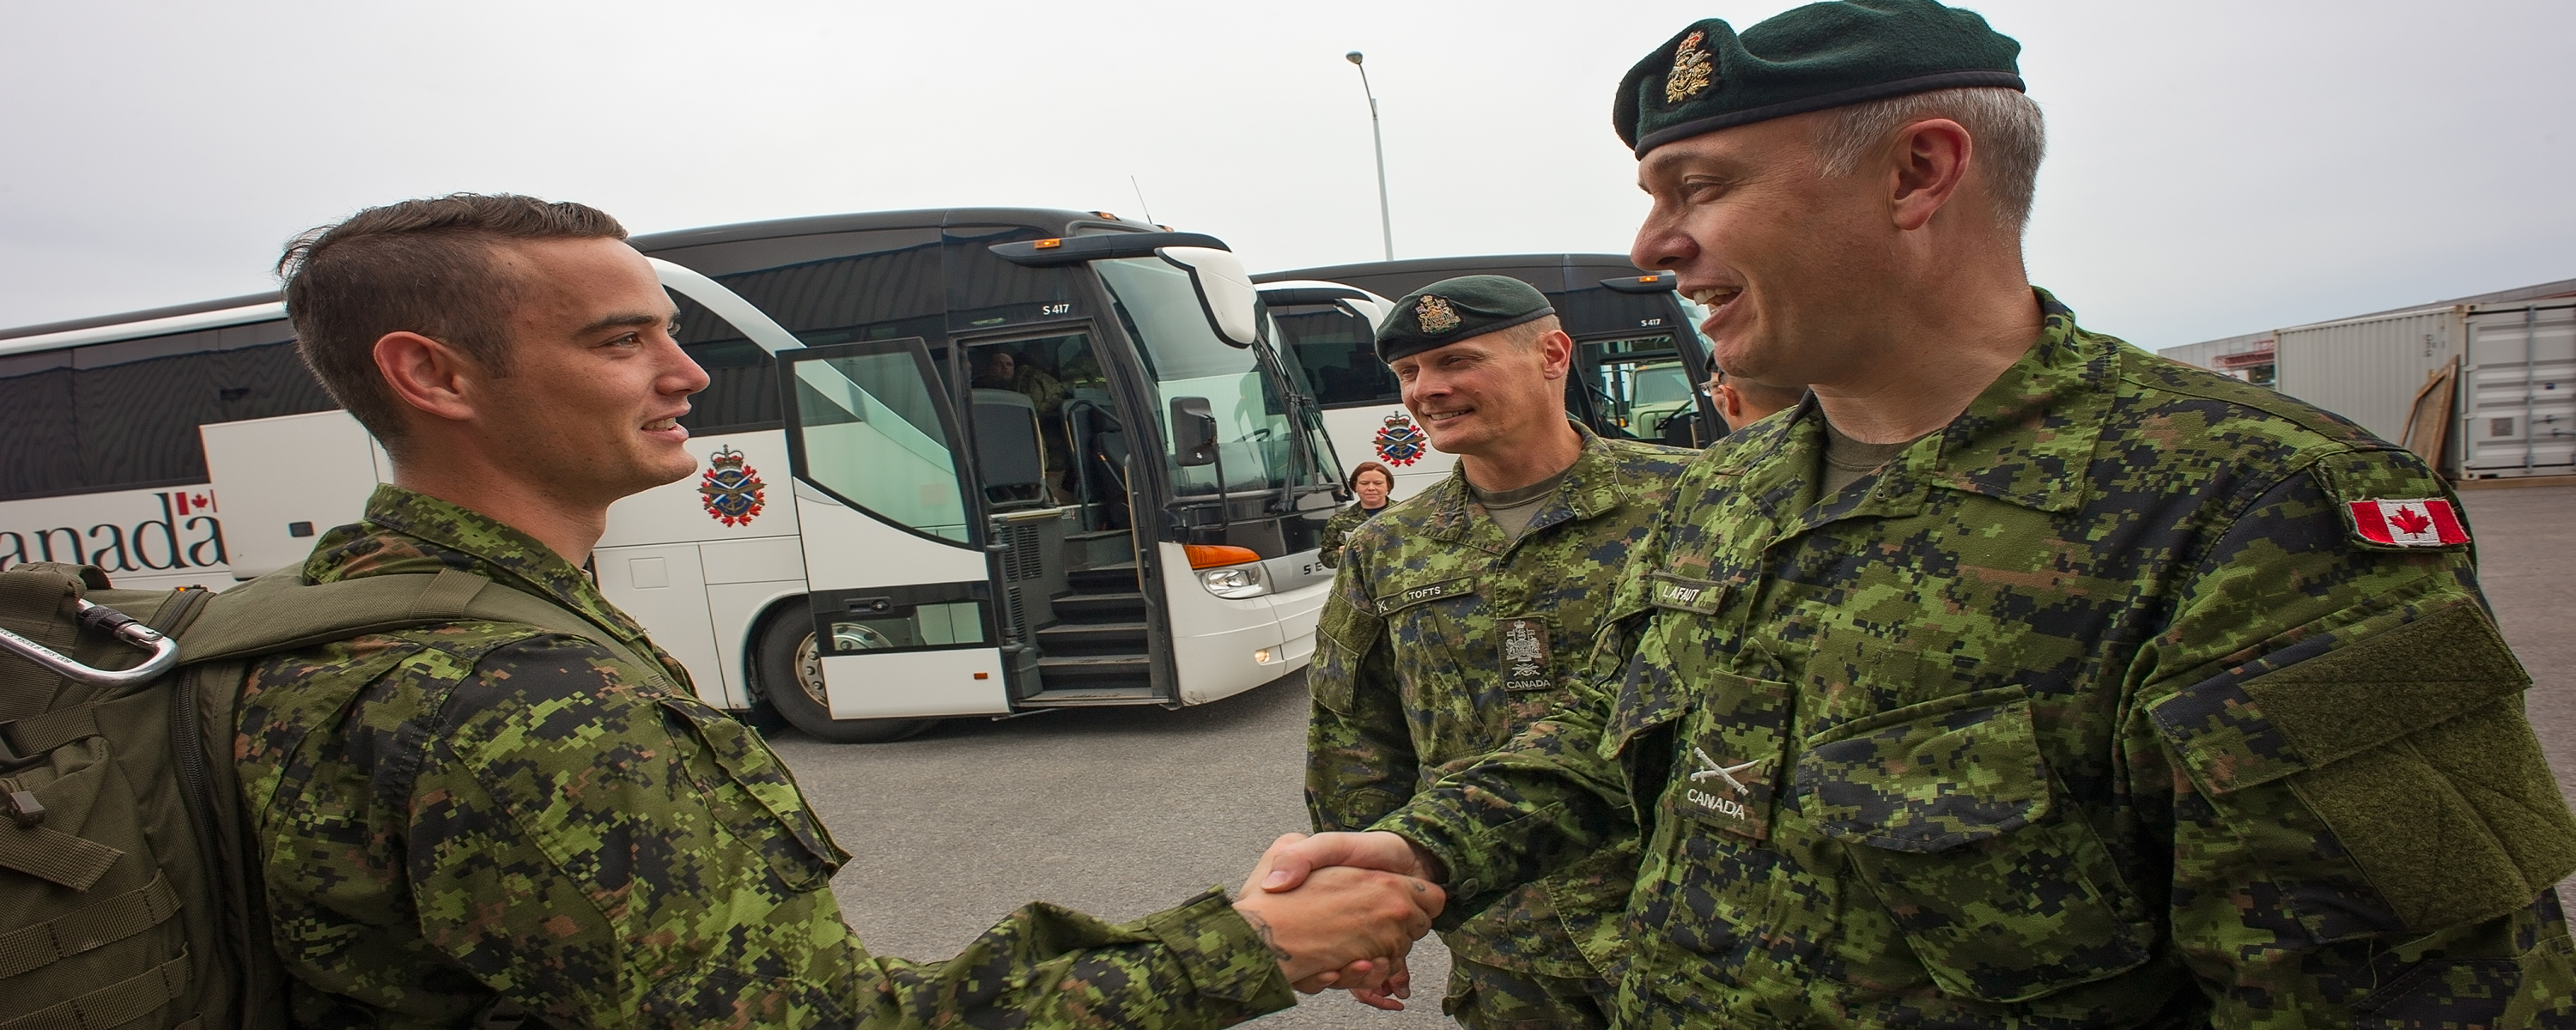 Two soldiers in uniform shake hands with another soldier in uniform as he prepares to board a white bus.